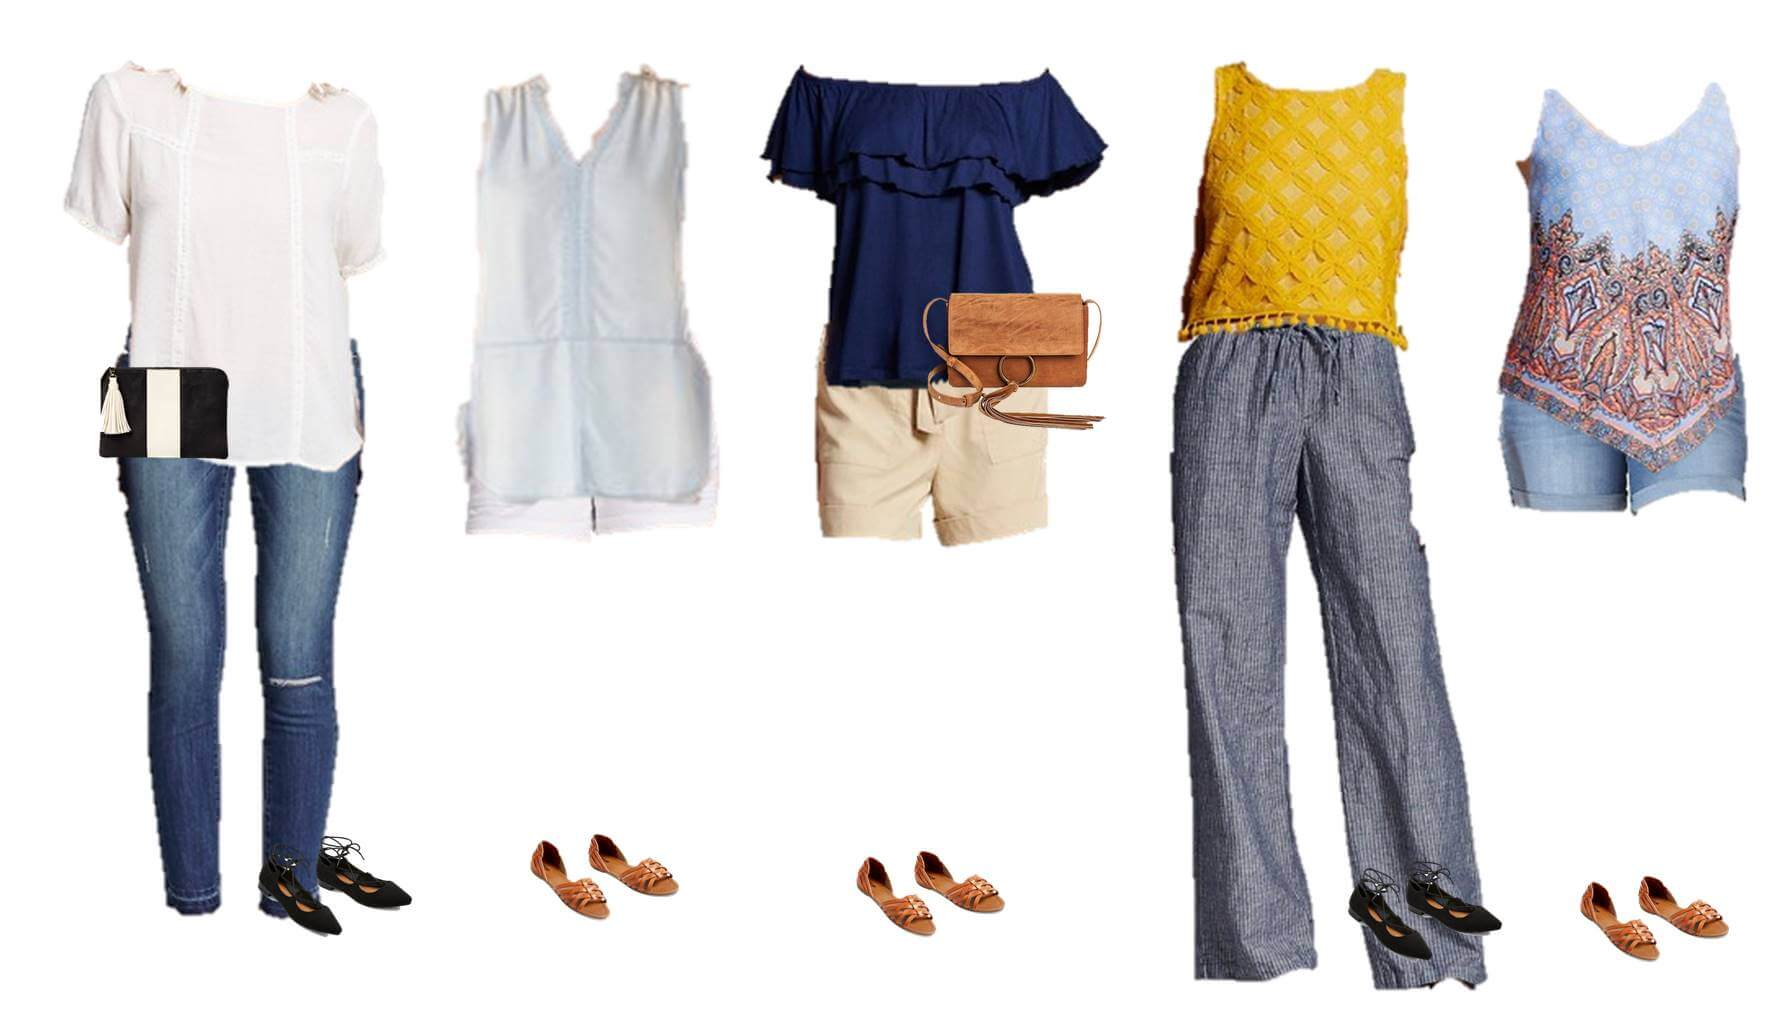 5.10 Mix and Match Fashion - Target Summer Styles 11-15